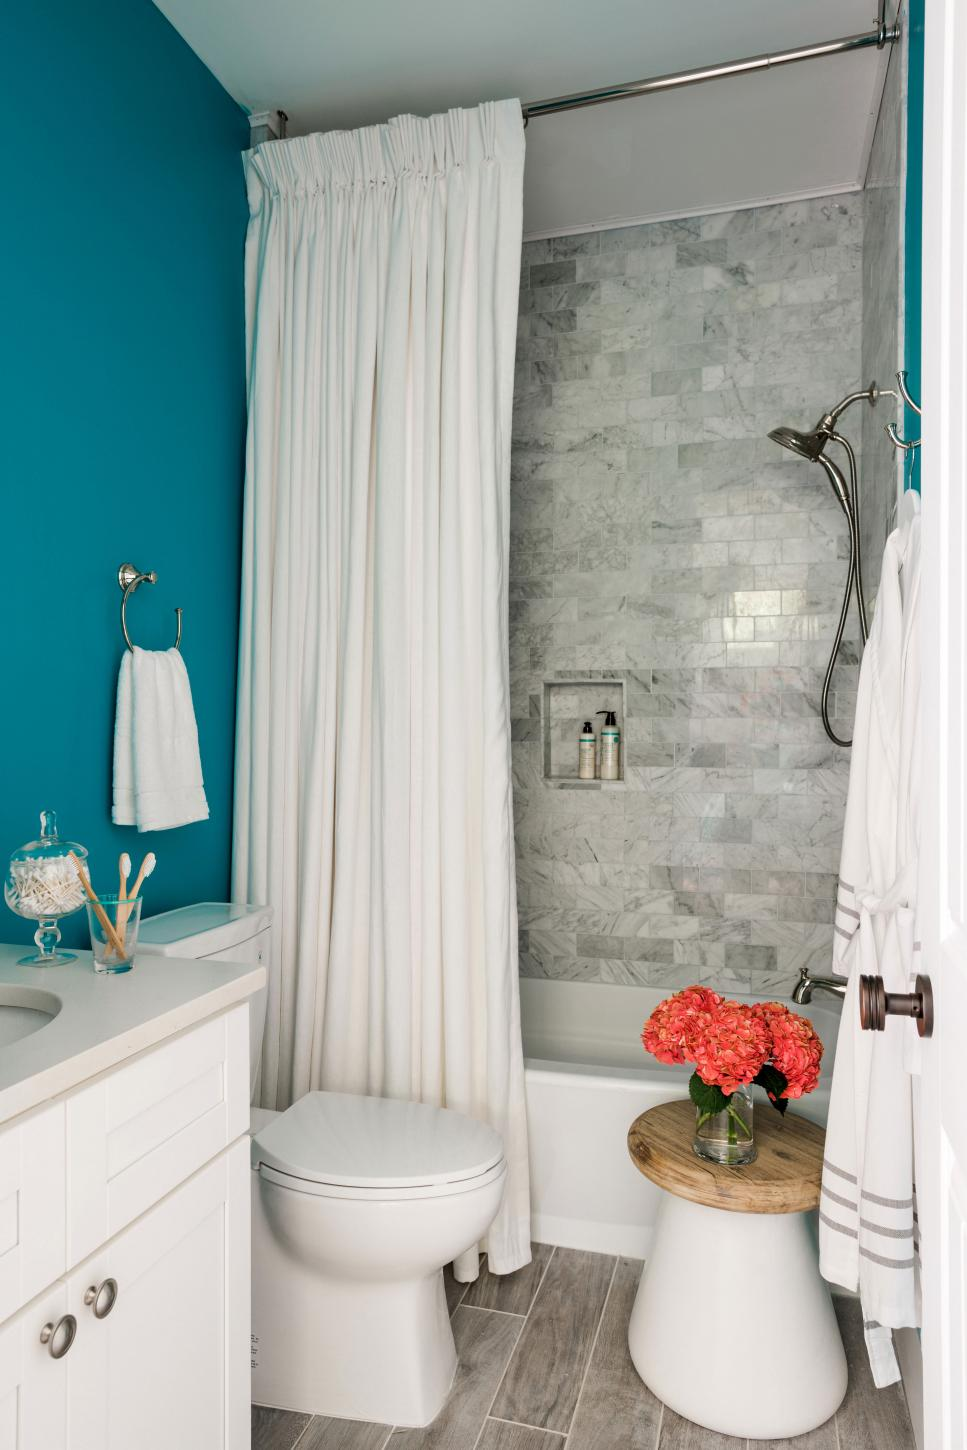 hgtv dream home 2017: terrace suite bathroom pictures | hgtv dream